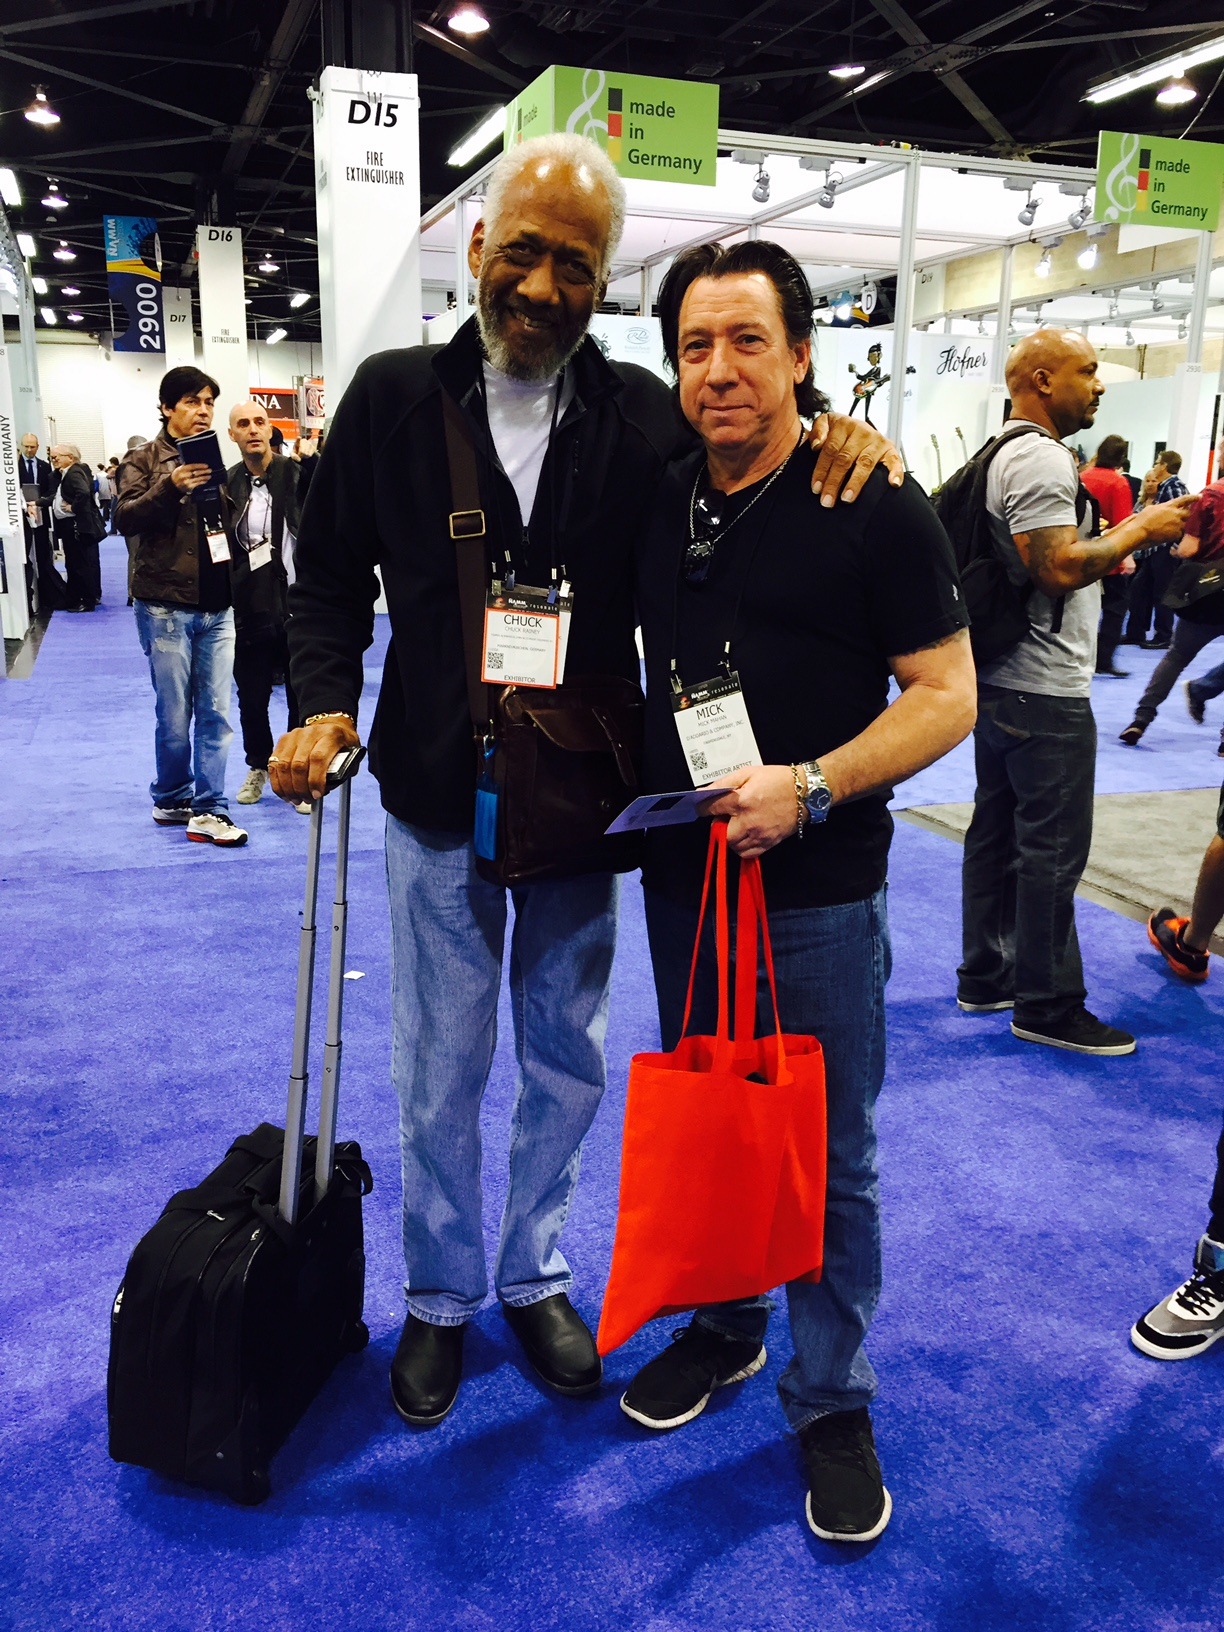 Mr. Chuck Rainey & Mick. 2 guys from Youngstown